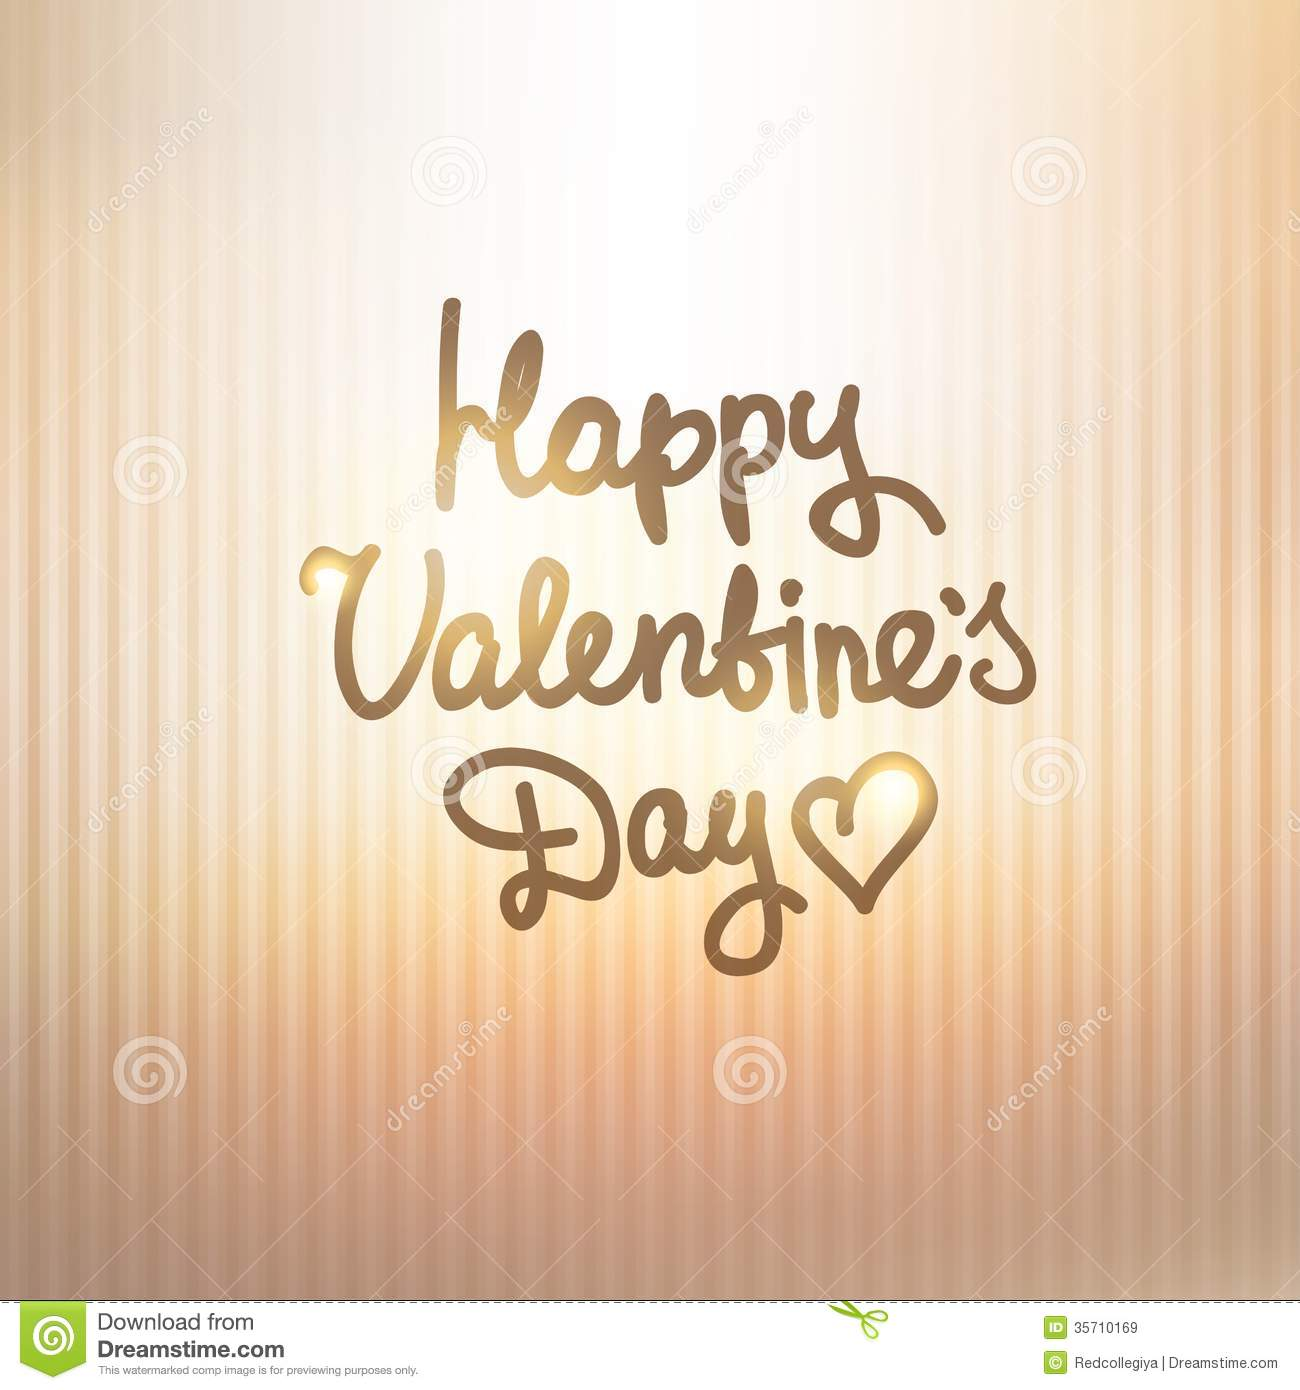 Happy Valentines Day Stock Vector Illustration Of Backdrop 35710169